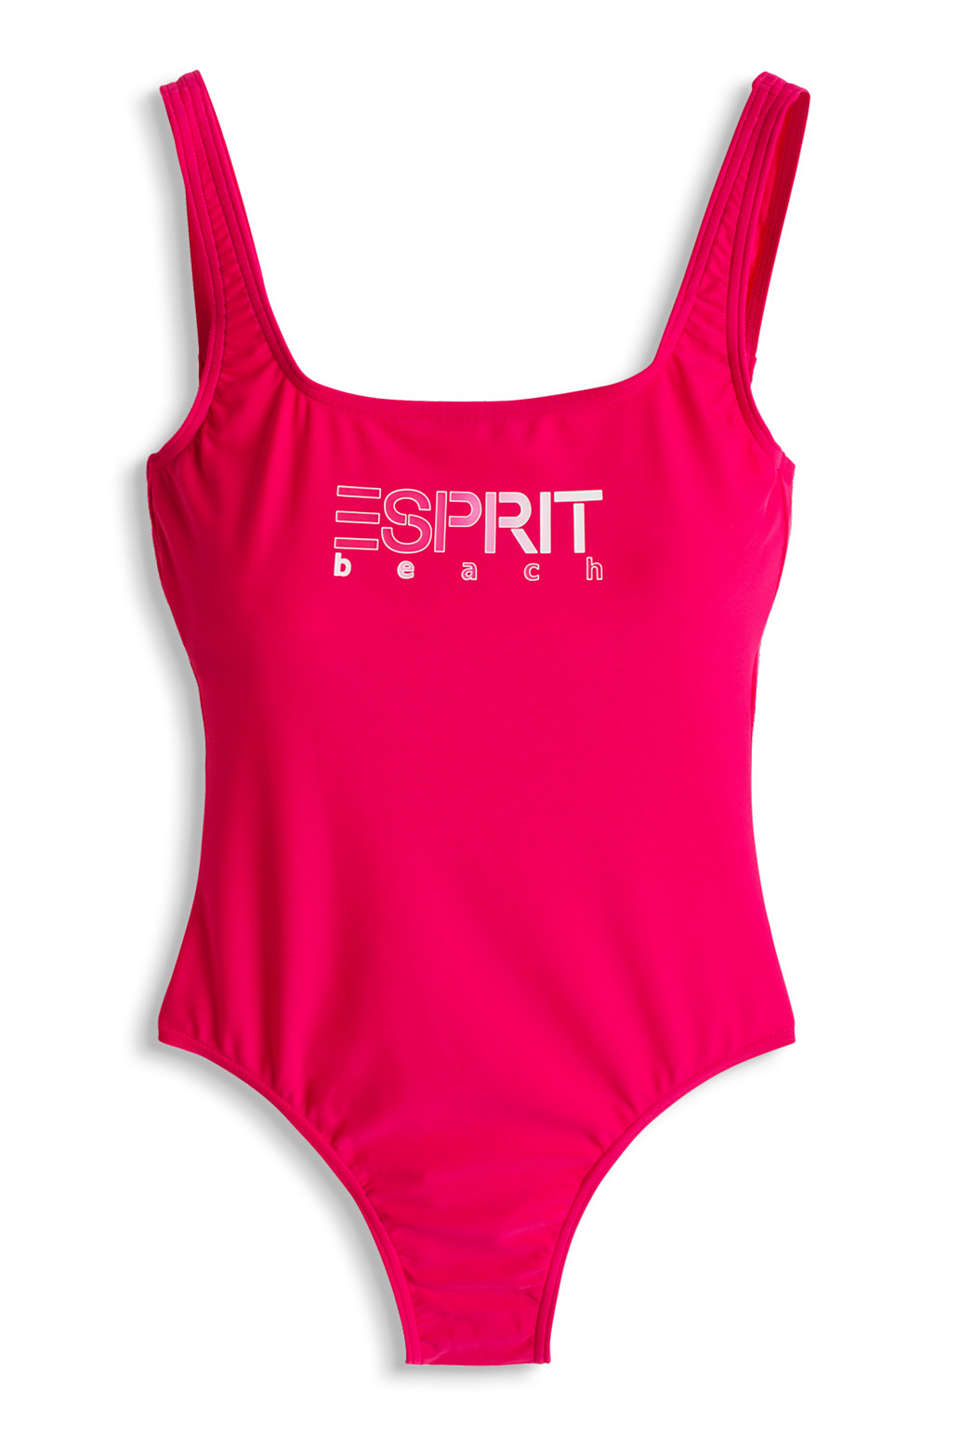 with a printed logo and Lycra®